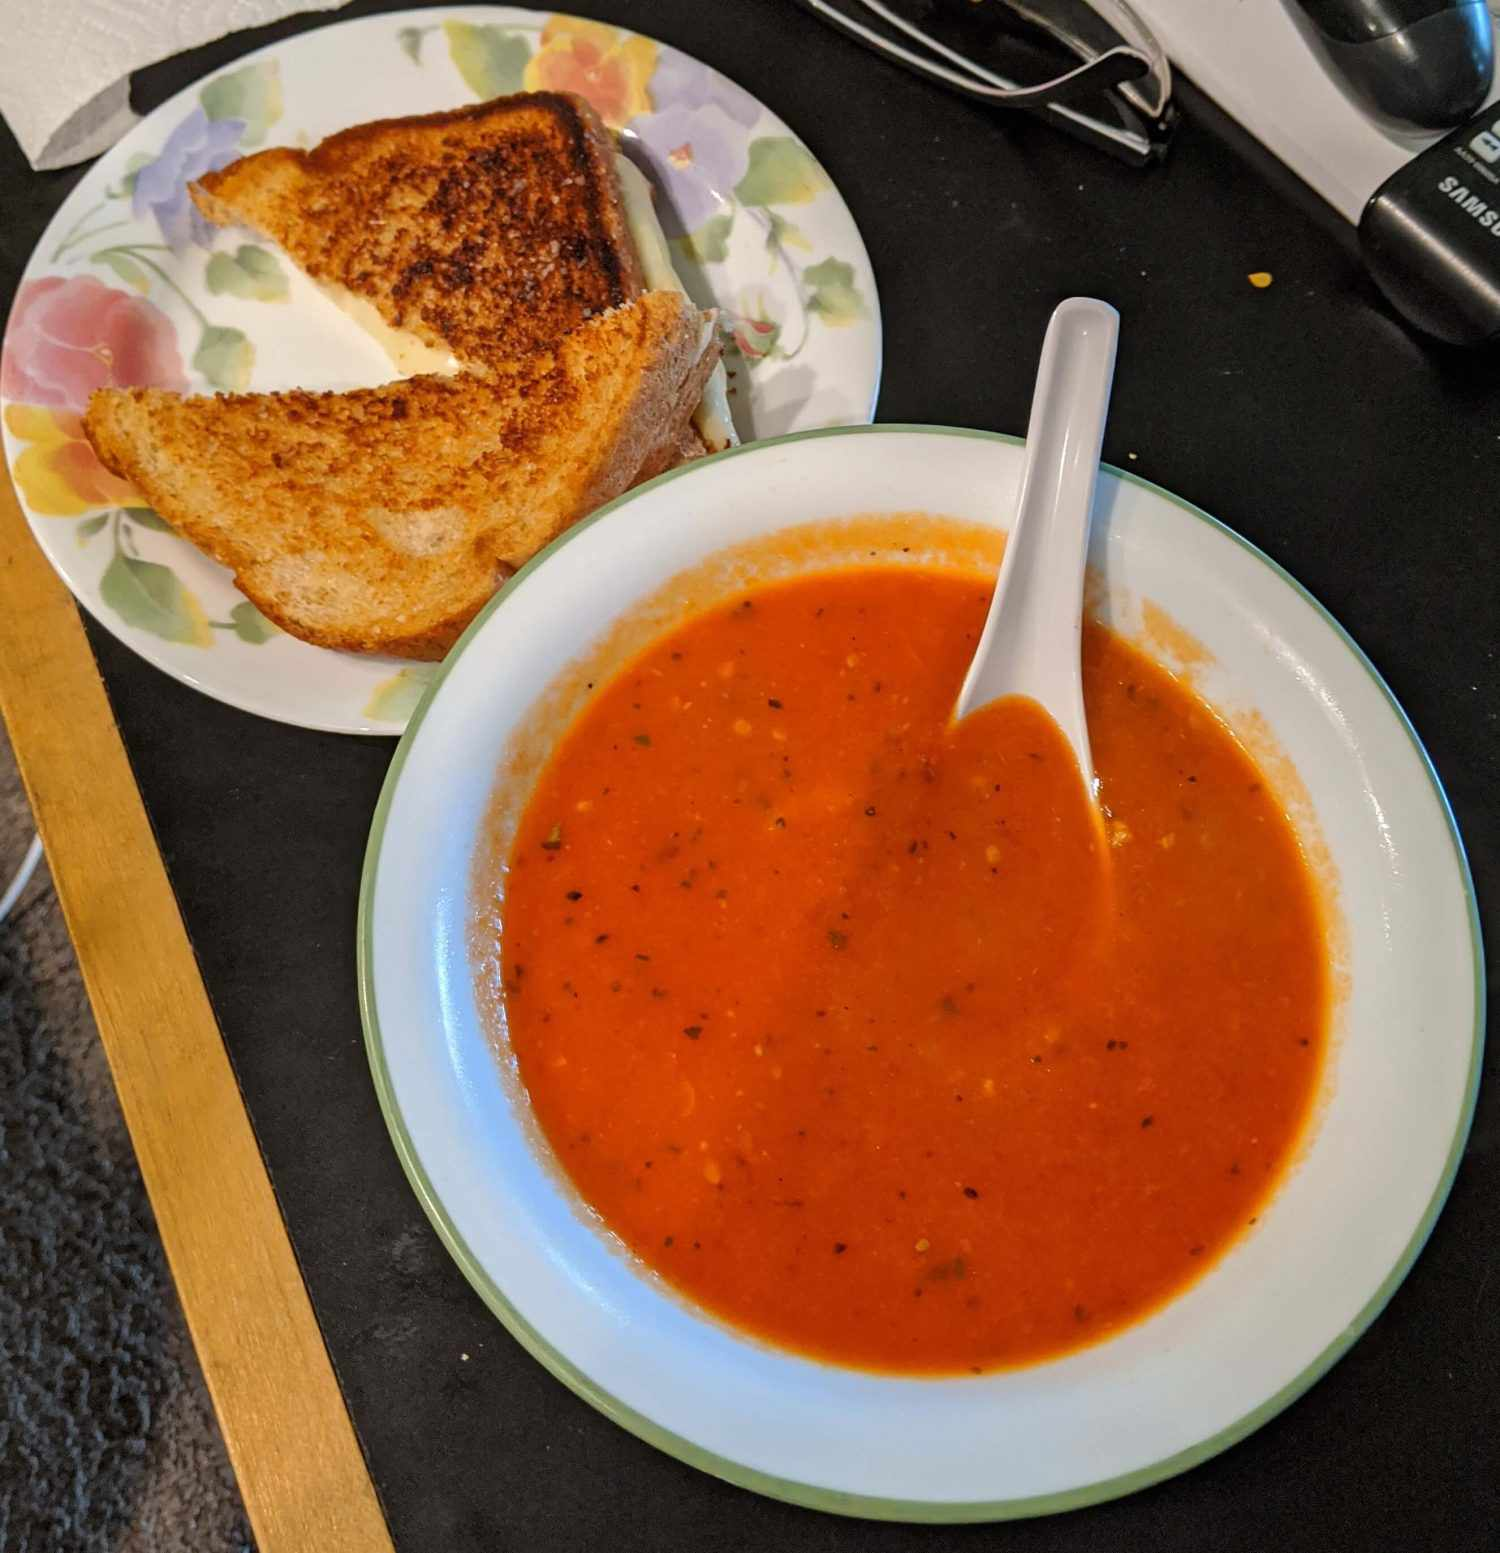 Bowl of tomato soup with a grilled cheese on a plate alongside